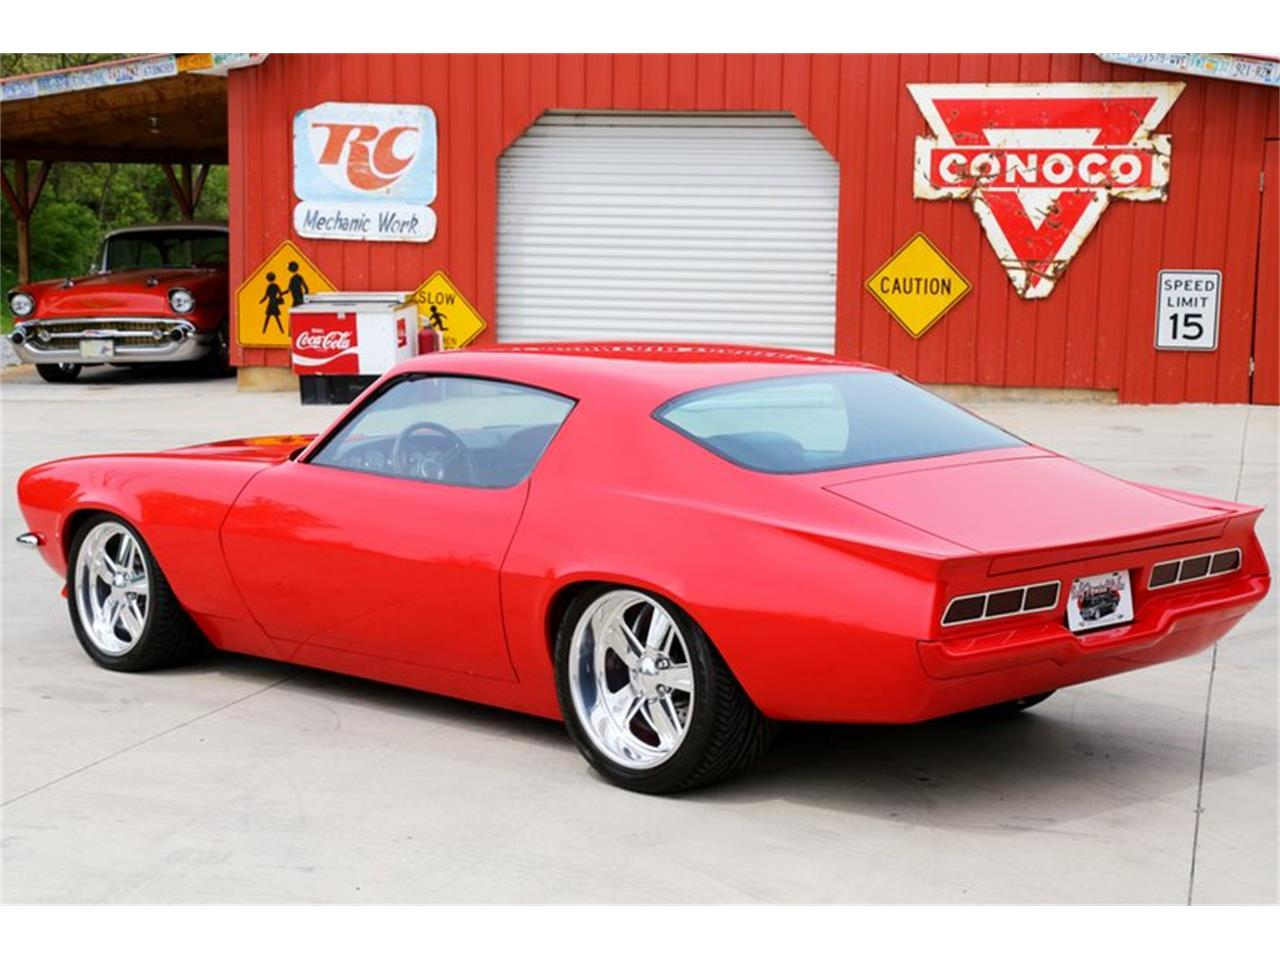 Large Picture of '70 Chevrolet Camaro located in Tennessee Offered by Smoky Mountain Traders - HC27